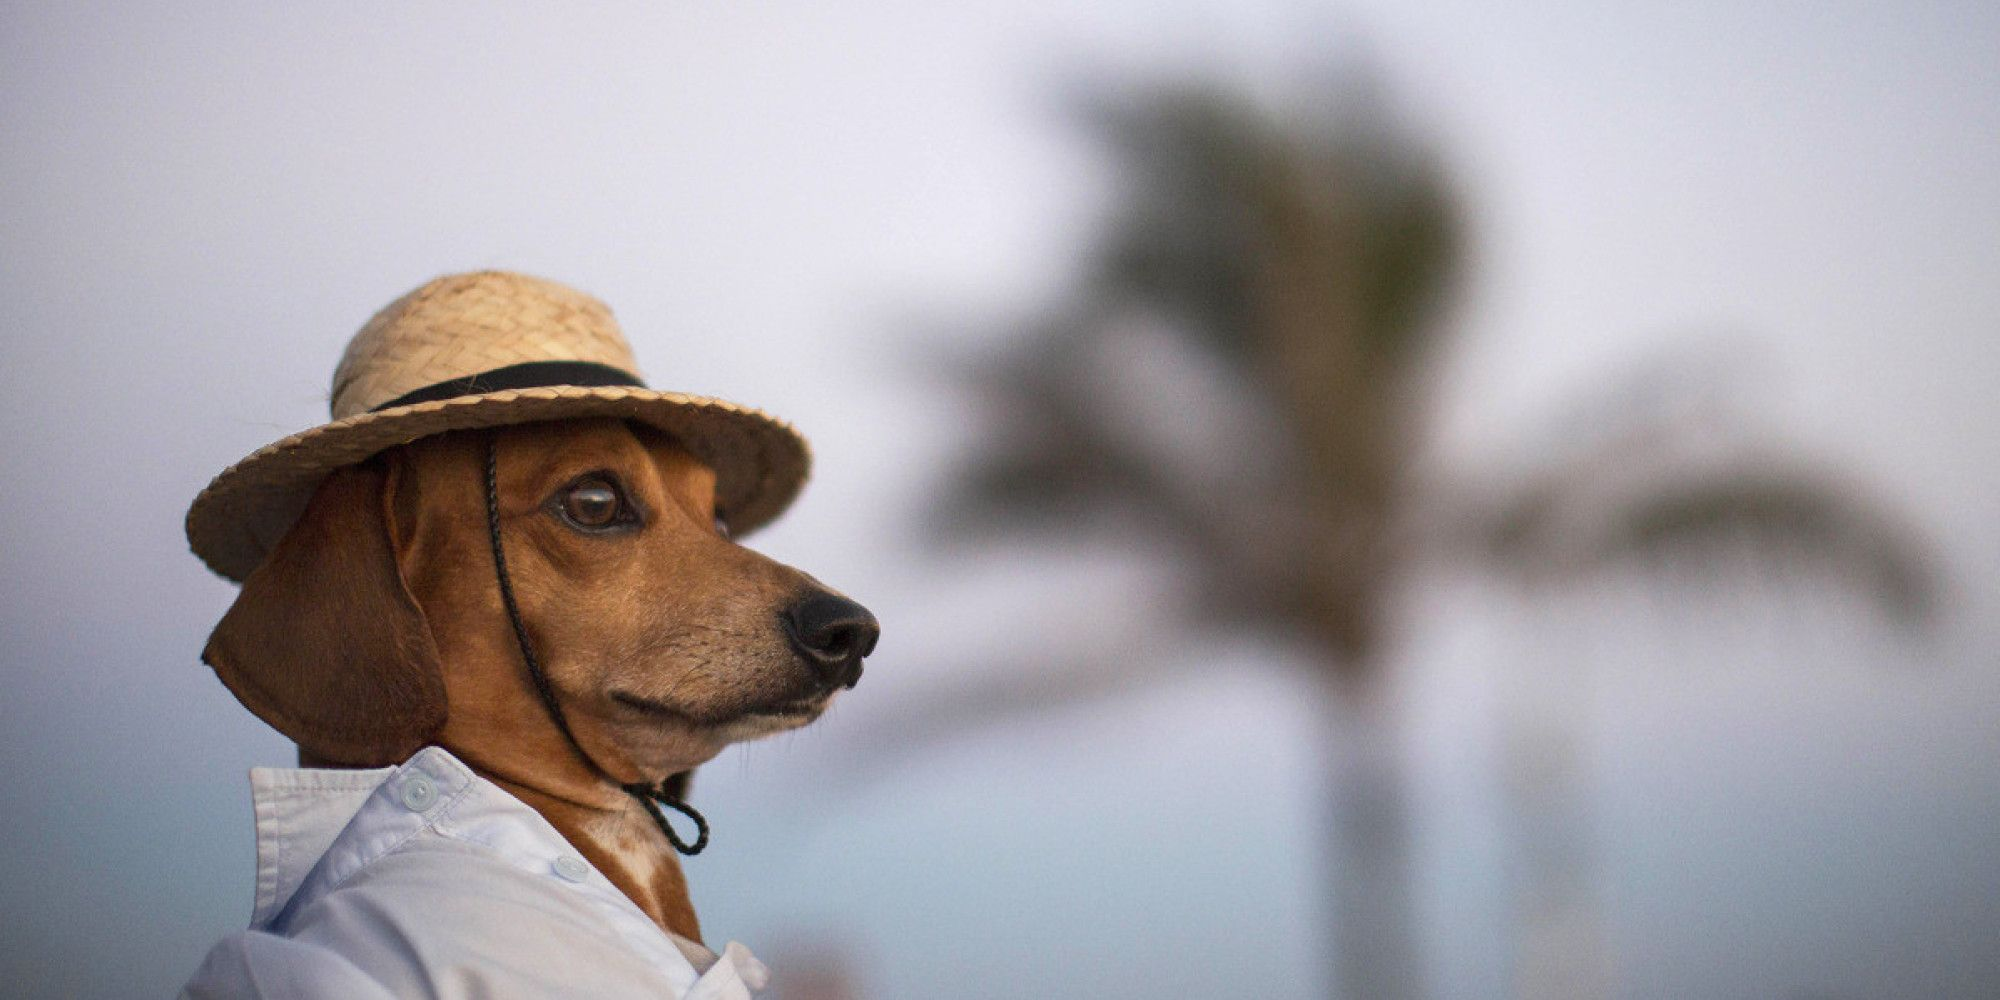 Tiny Dog In A Hat Is The Best Thing That Happened This Week Tiny Dogs Funny Animals Funny Animal Pictures